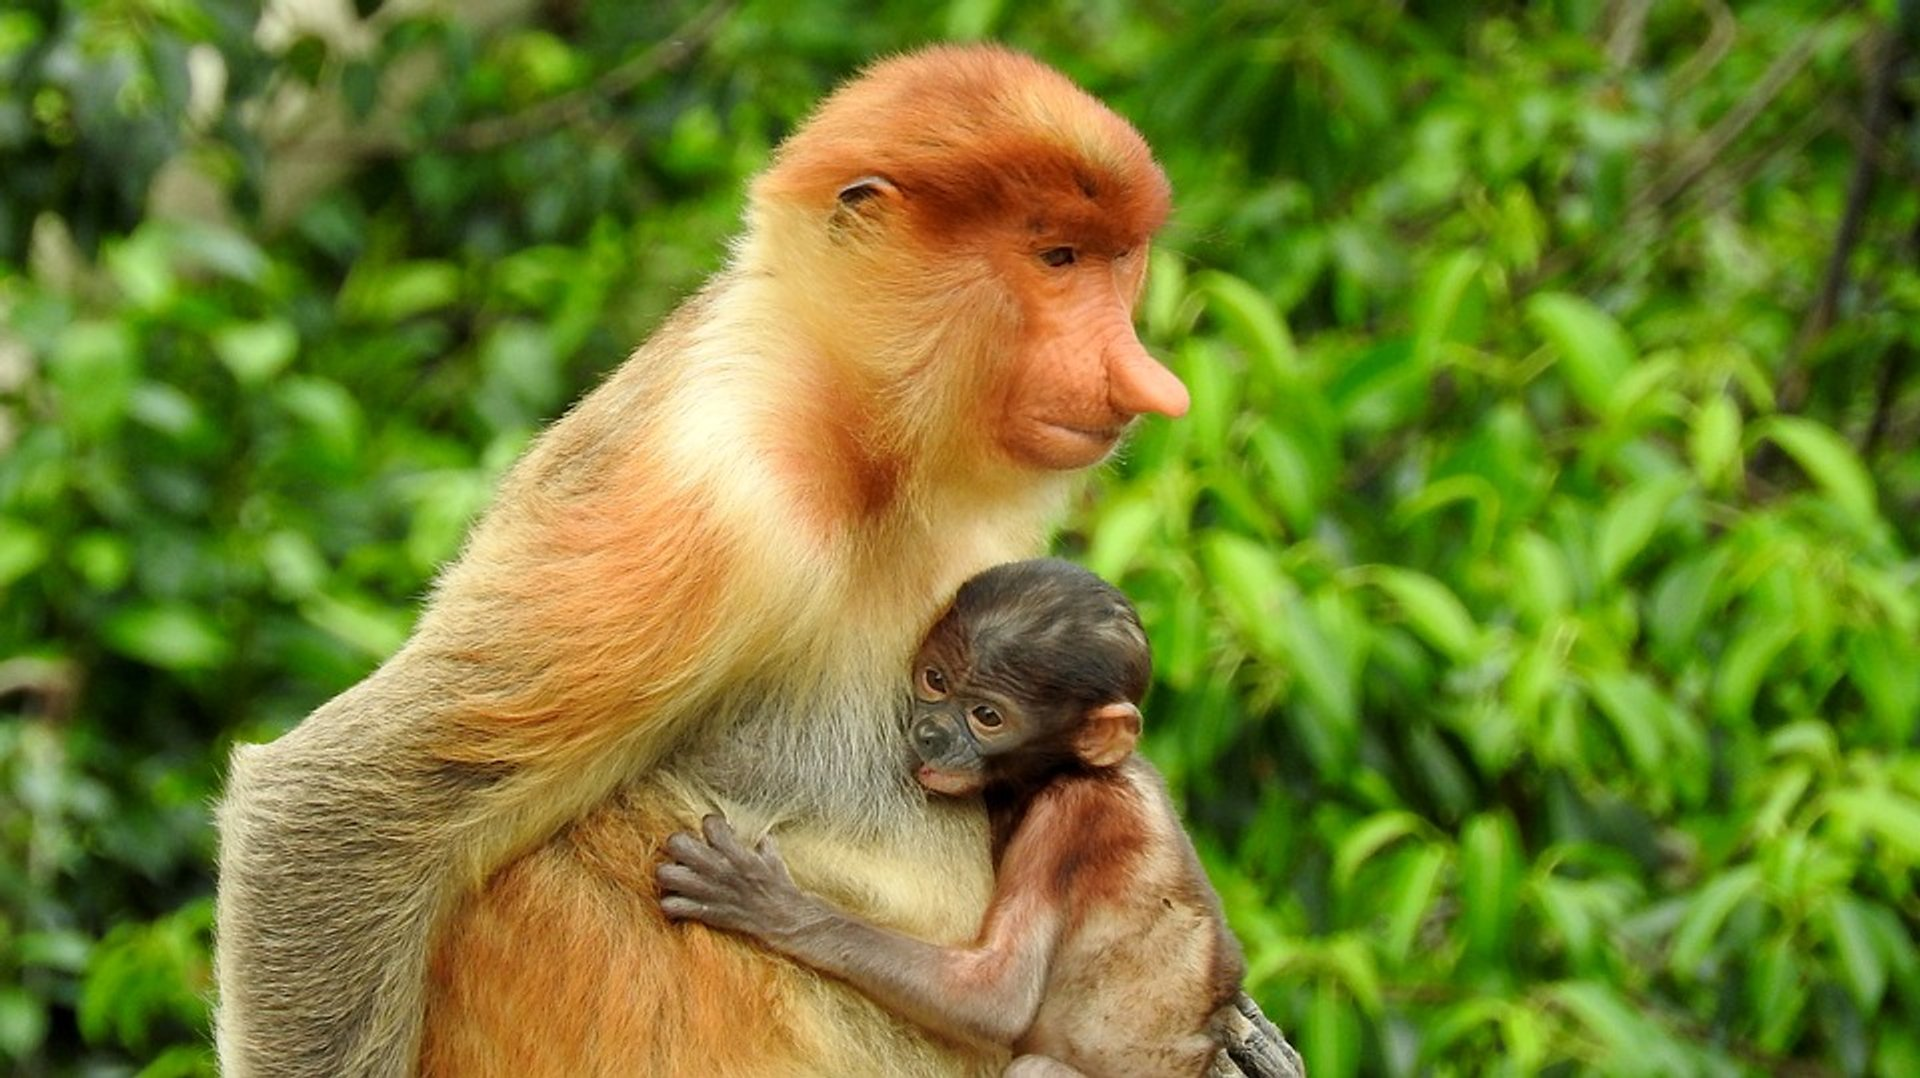 Best time to see Proboscis Monkeys in Borneo 2019